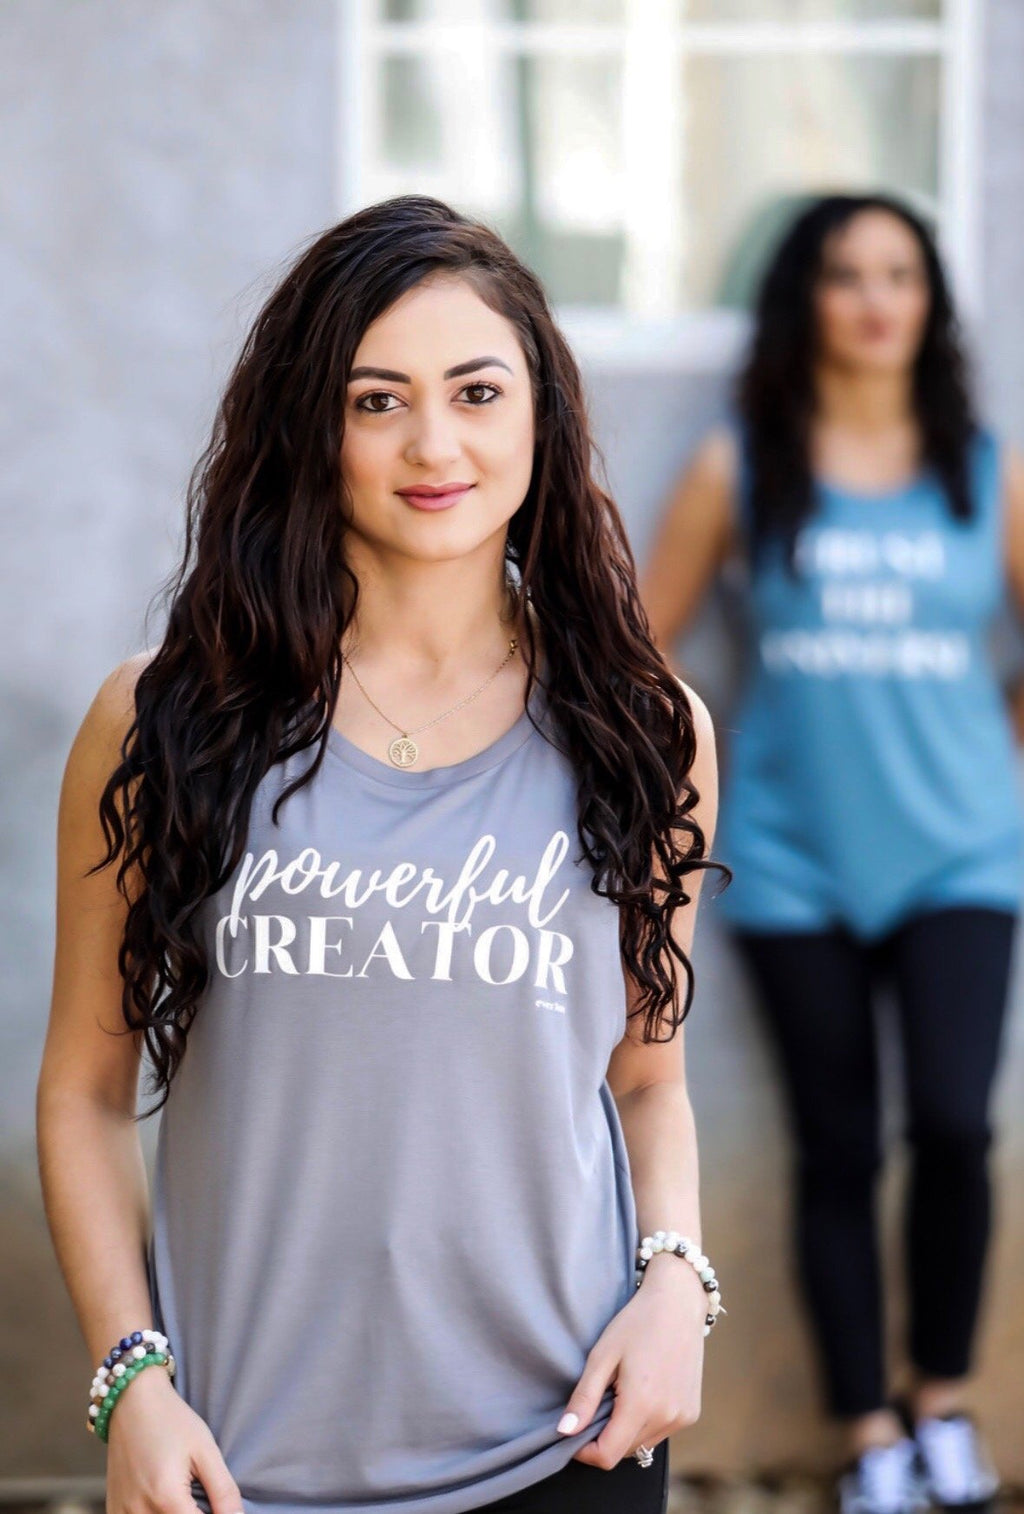 Powerful Creator Tank - everlur spiritual clothing